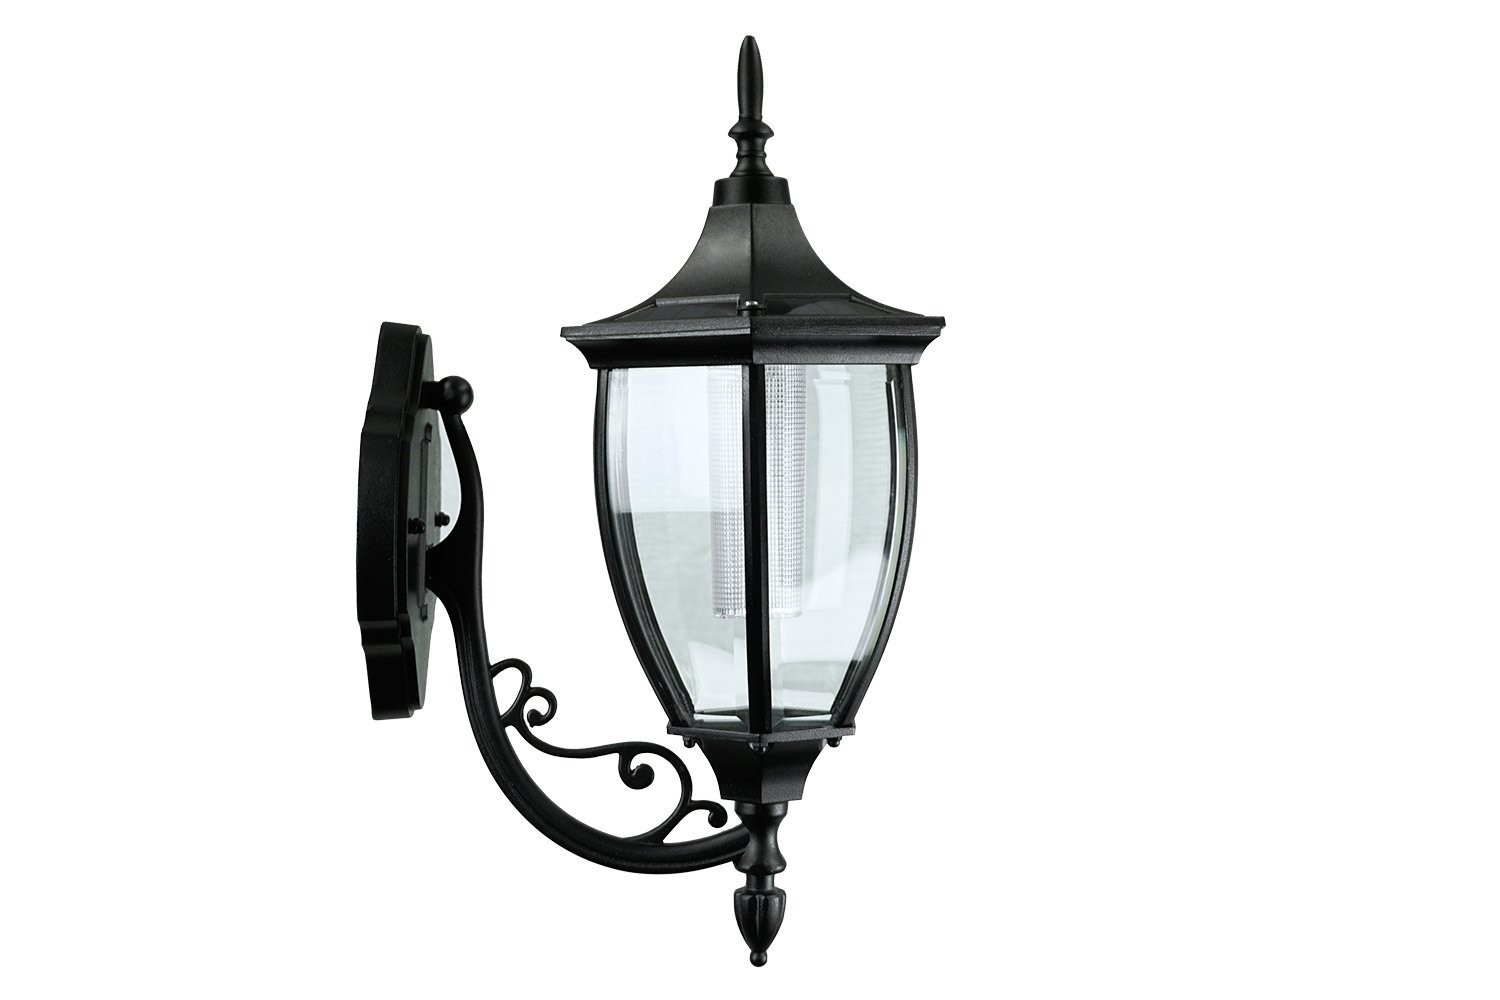 Sun-Ray 312079 Crestmont Wall Mount Solar Lantern, No Wiring Needed, Batteries Included, 17.8 Inches, Black